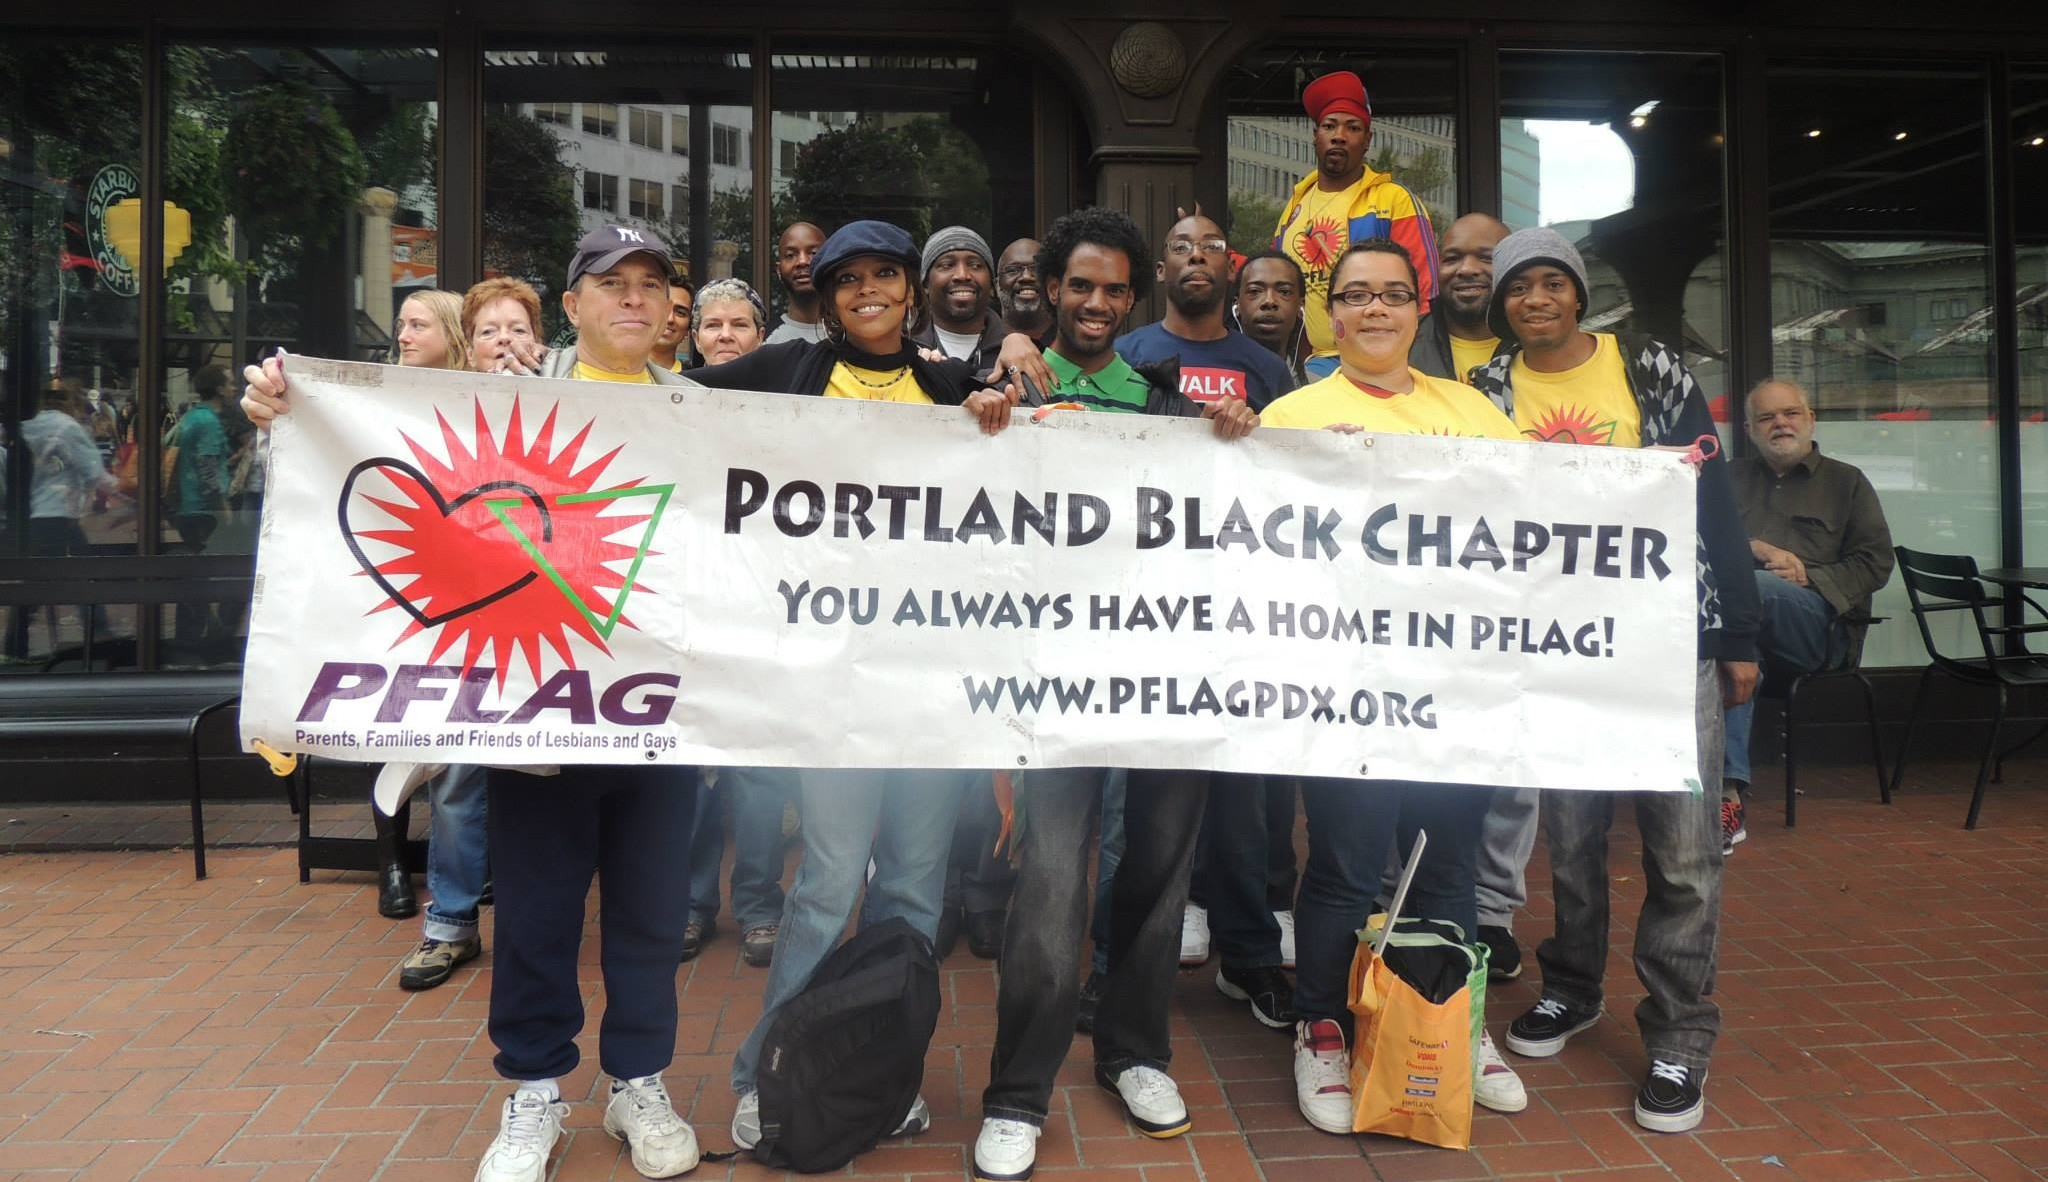 PFLAG - Portland Black Chapter